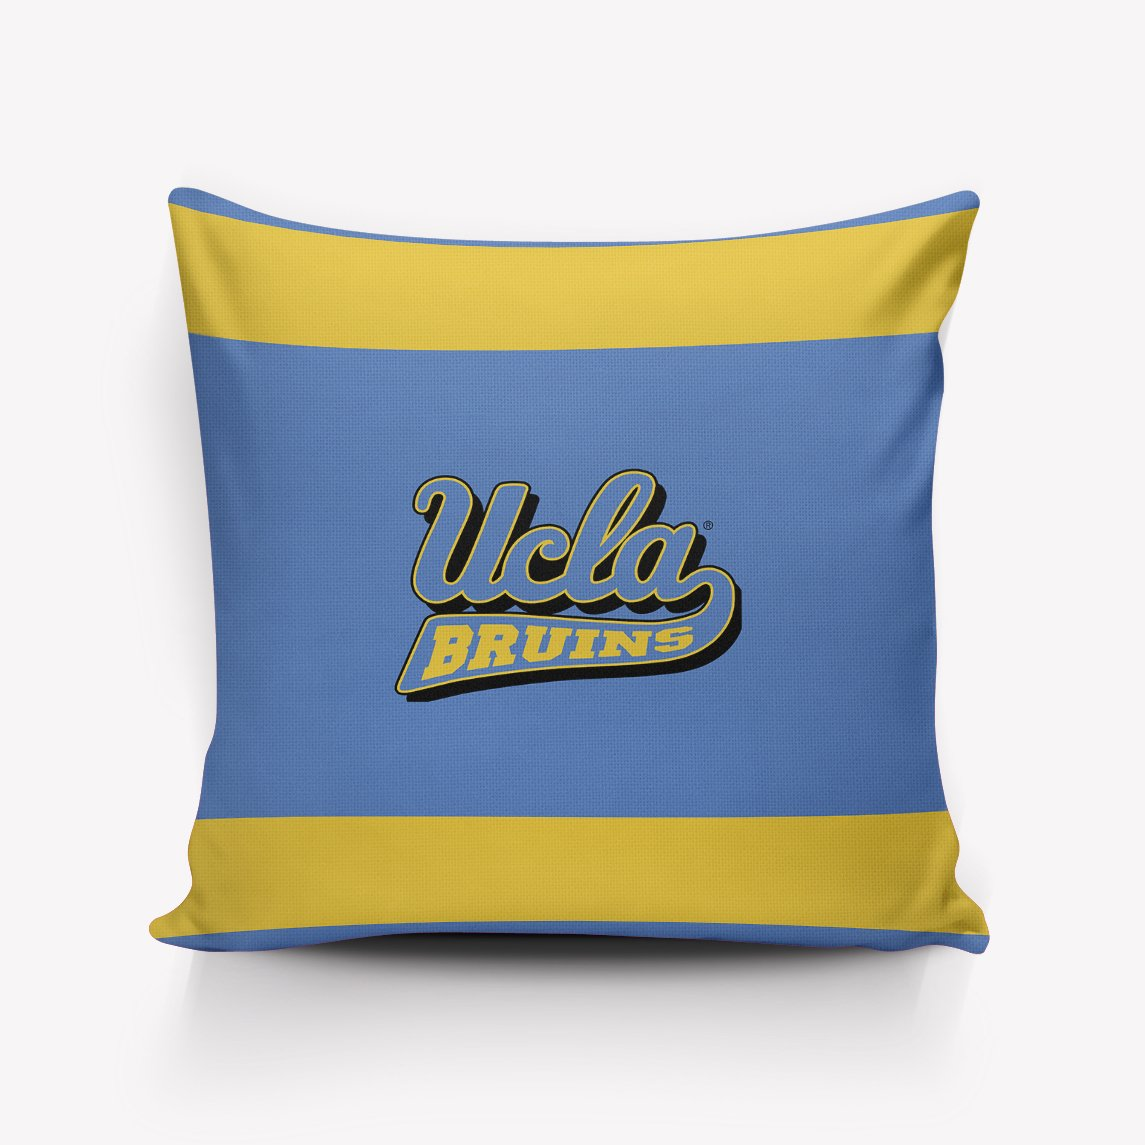 Pillow Case with Hidden Zipper Satin Fabric Skin and Hair Beauty Ucla School Logo Graphic, Blue Background with Yellow Stripes Pillowcases Wrinkle, Fade, Stain Resistant Pillow Covers 18x18 inch